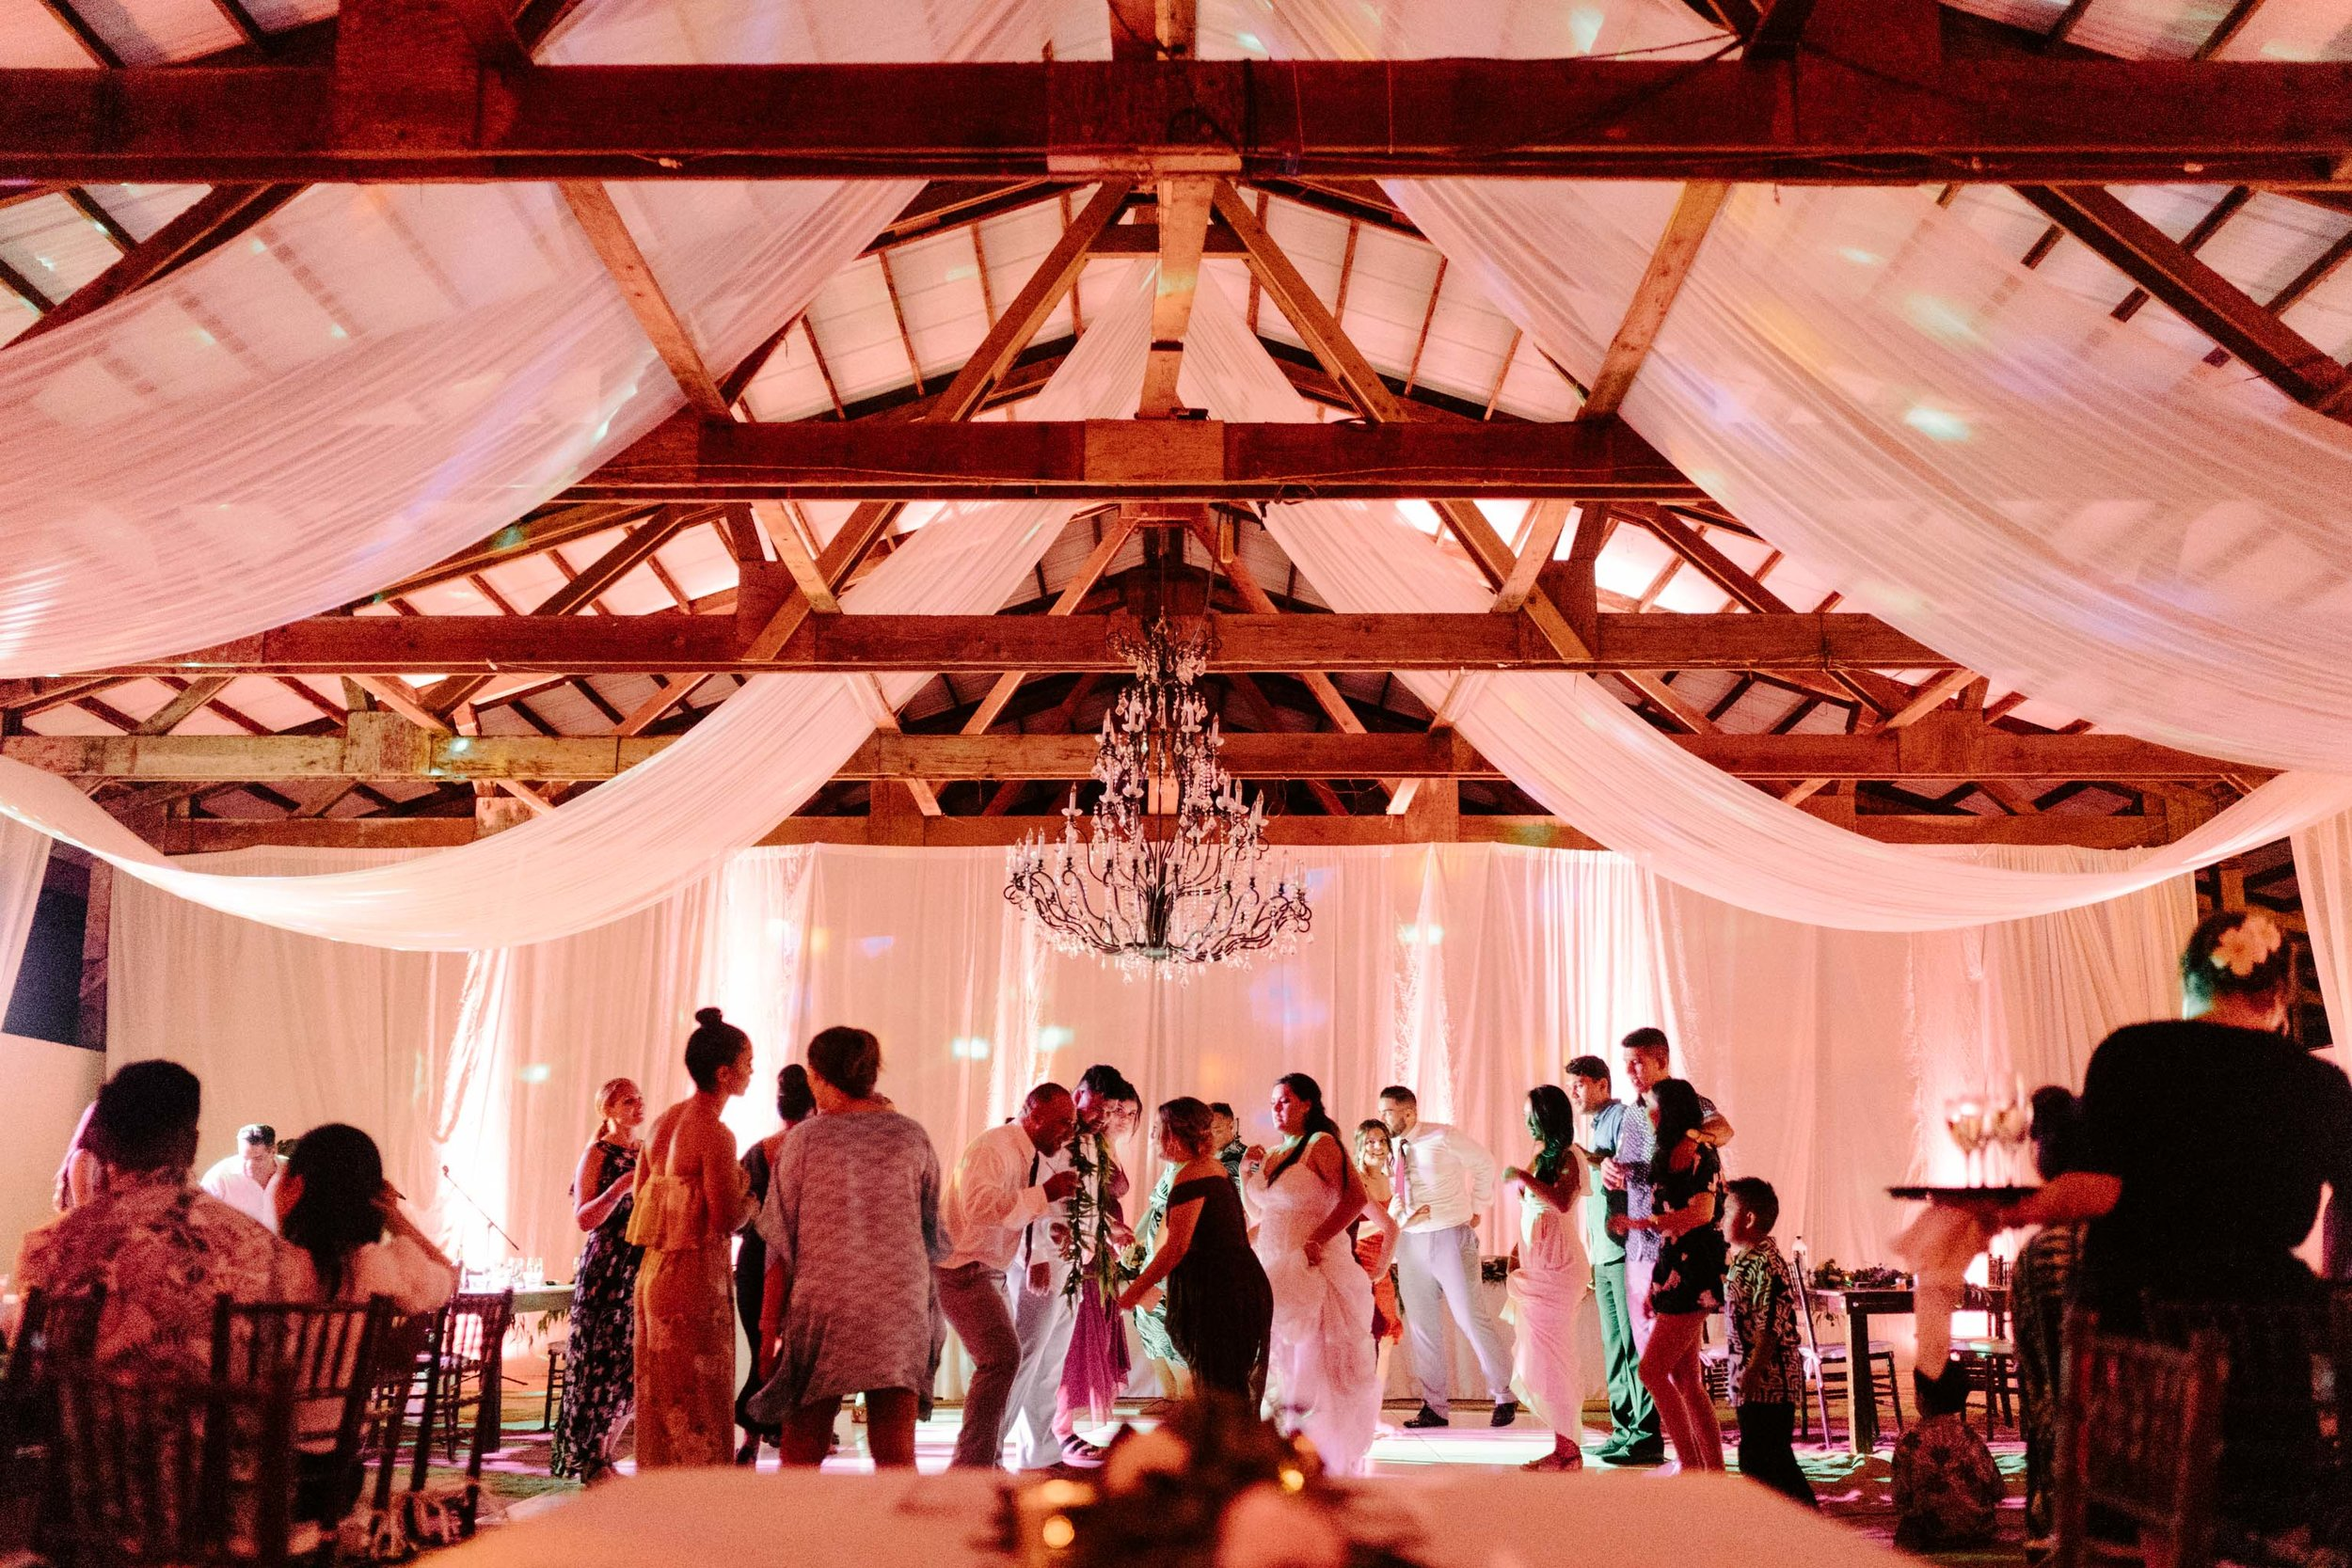 Wedding Reception Dancing Photo - Sunset Ranch Hawaii Barn Wedding Reception By Oahu Wedding Photographer Desiree Leilani